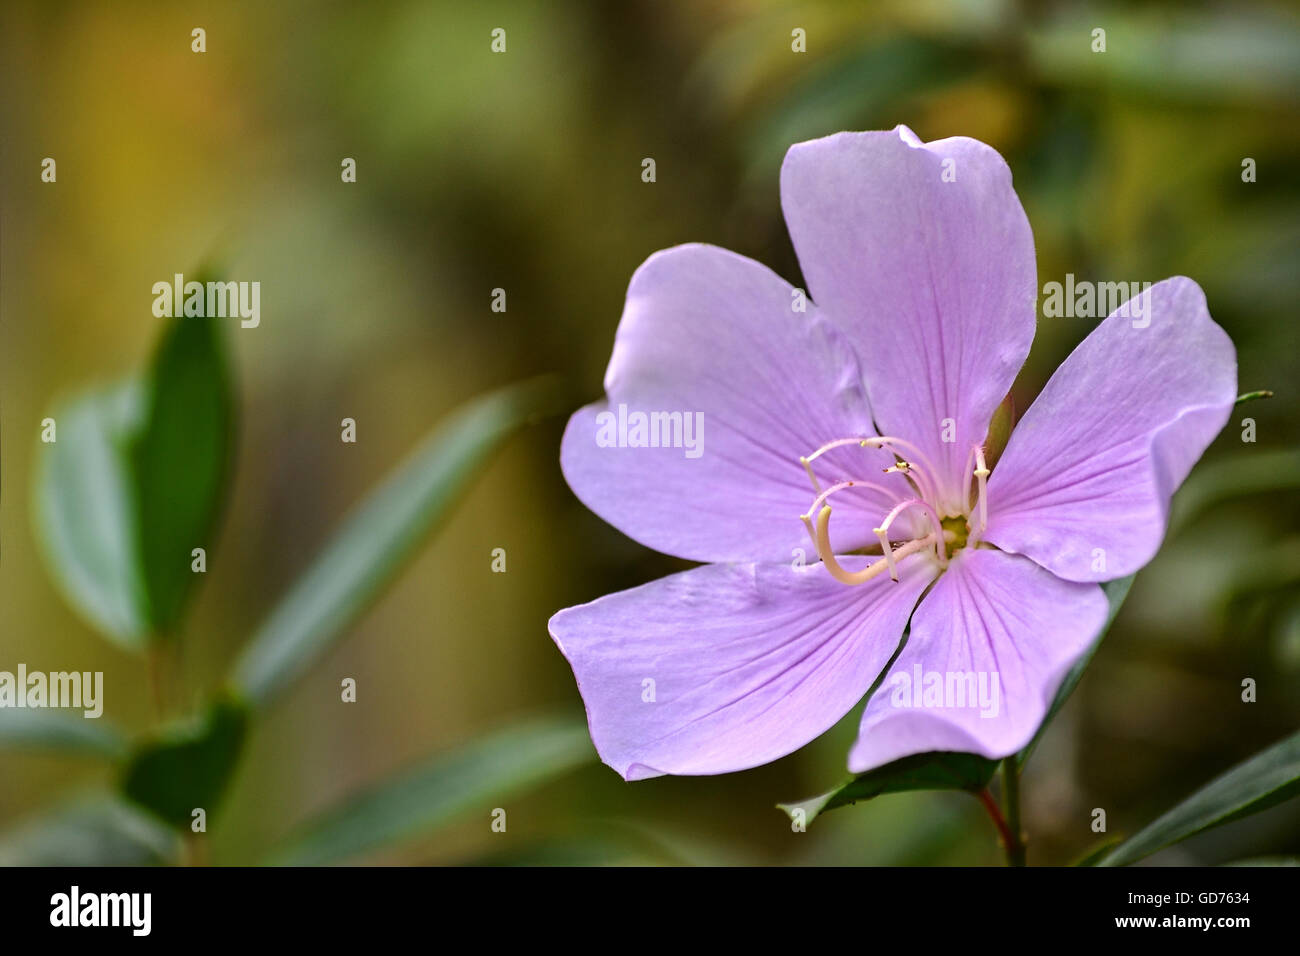 A light pink flower of Tibouchina mutabilis (Manacá-da-serra), in nature. This flower blooms white and is intense - Stock Image